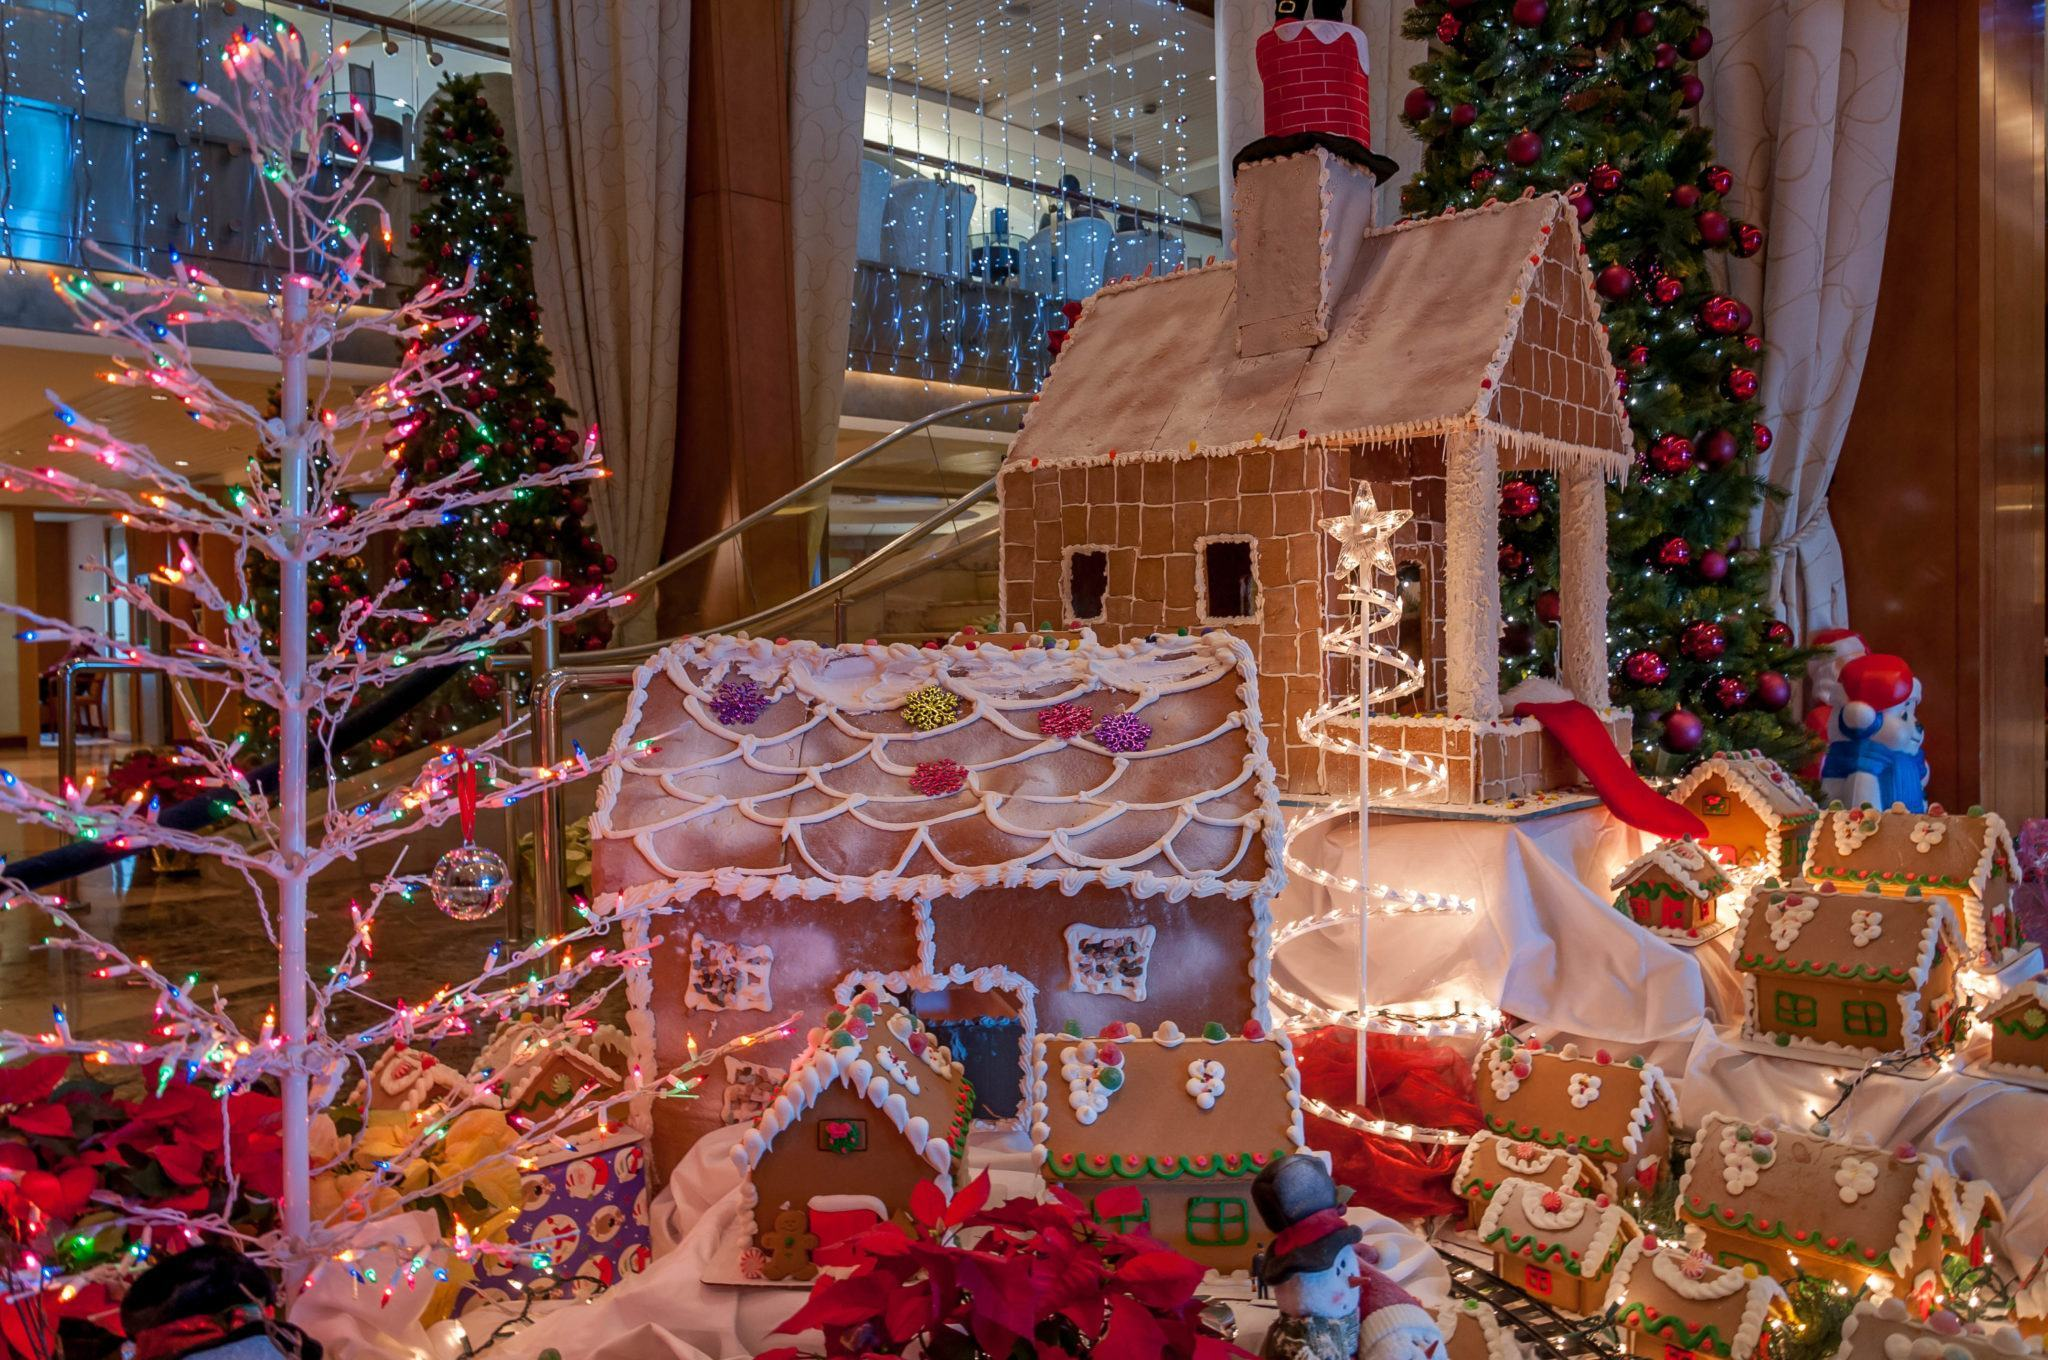 Gingerbread houses on display on the Celebrity Summit during a holiday cruise